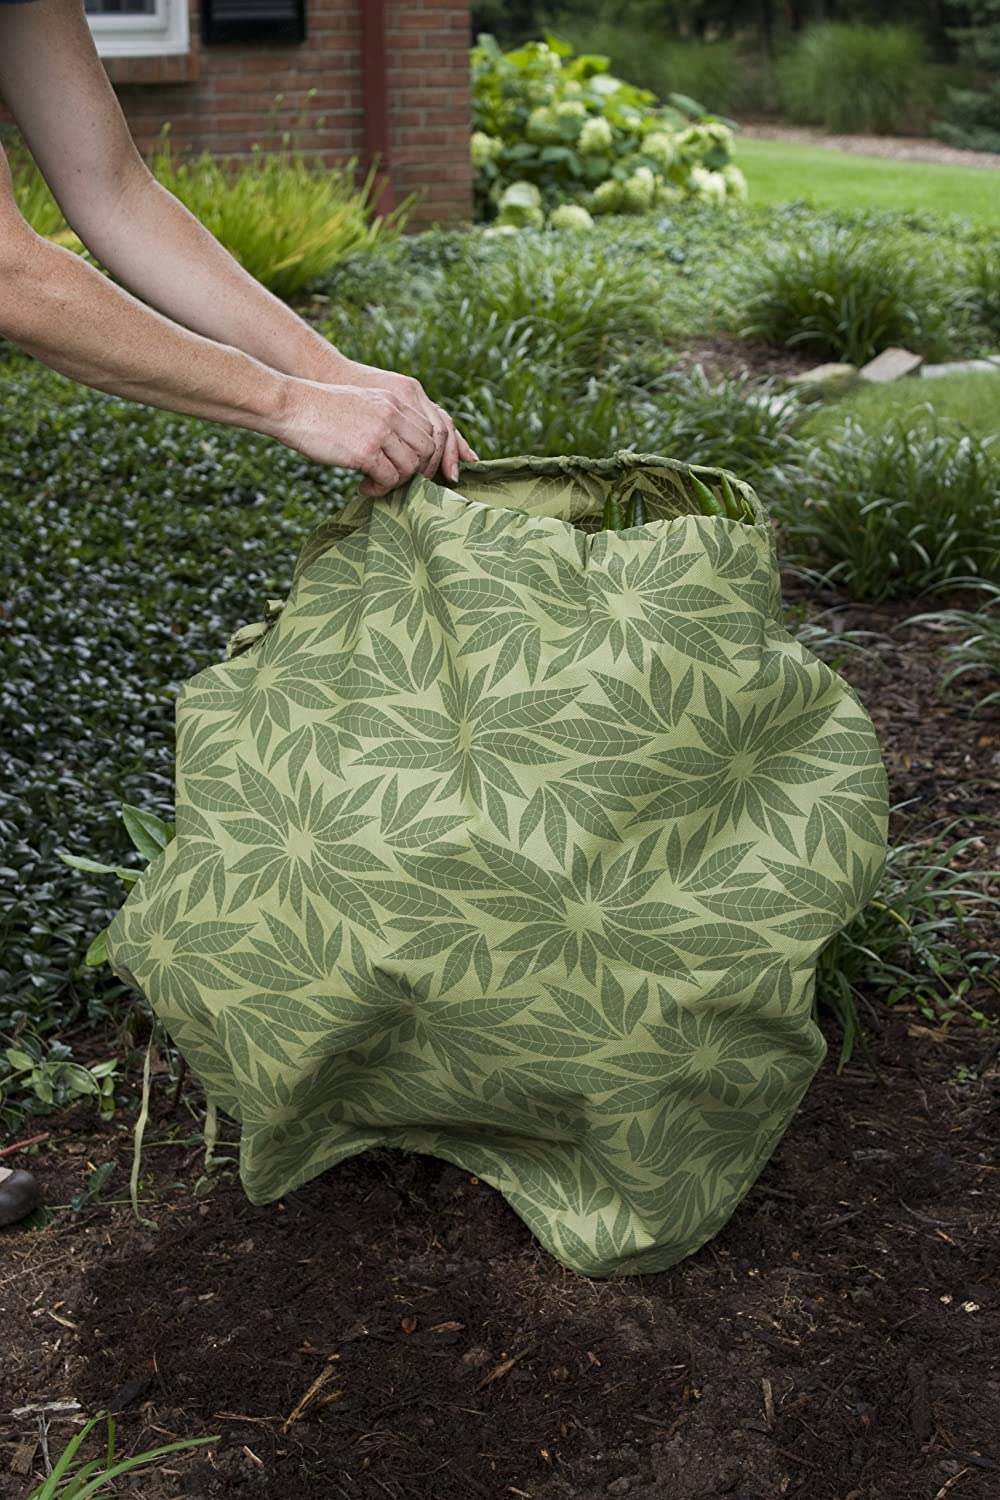 Shrub Jacket Season Extender – Frost Blanket for Winter Protection – Reusable Plant Cover for Small Plants Bushes – Protector Guard from Deer Rabbit – Small – by Plumstone